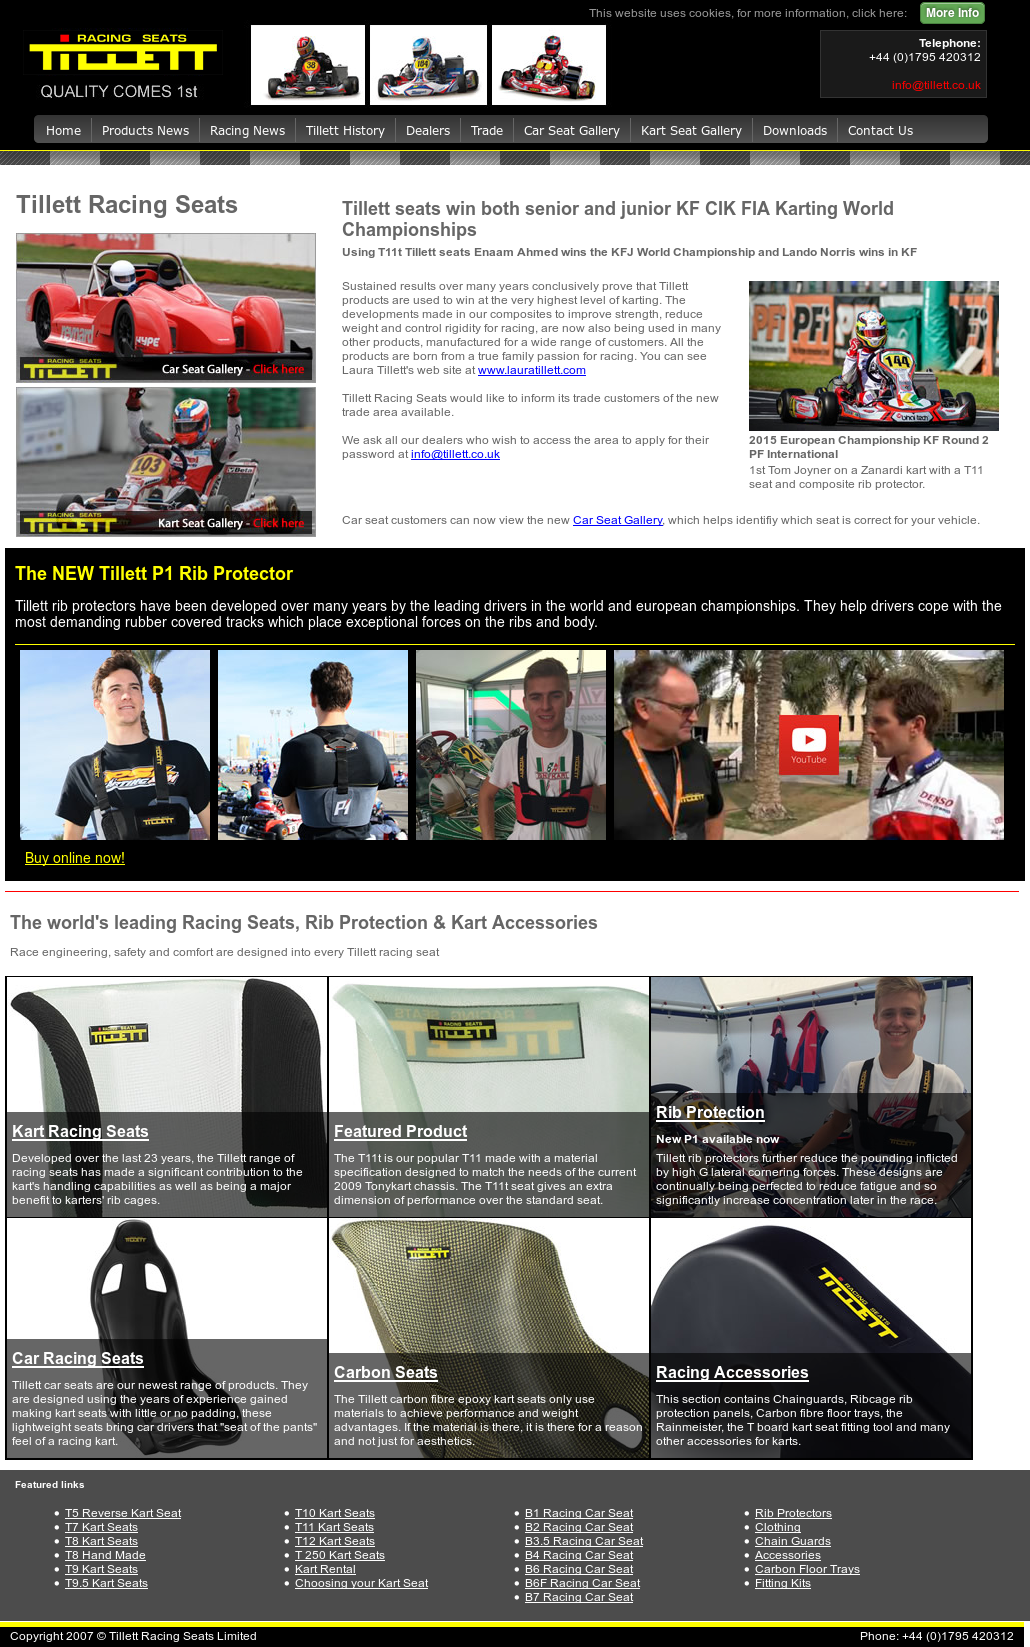 Tillett Racing Seats Competitors, Revenue and Employees